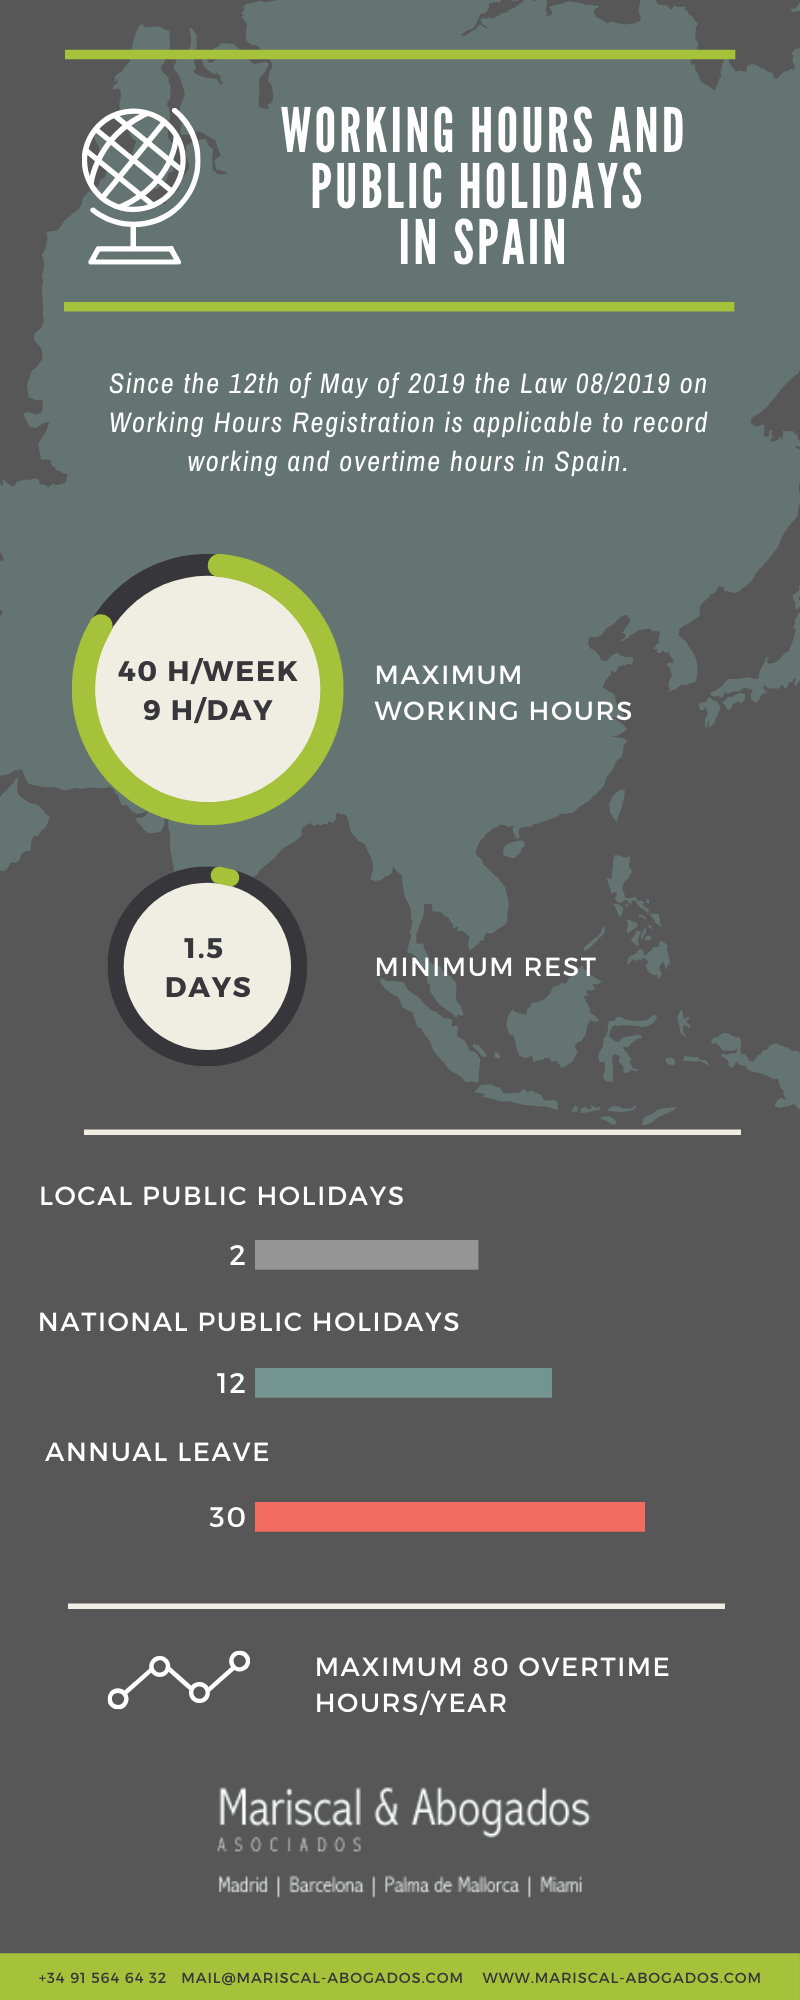 59 2019 Labour Law in Spain provisions on working hours and public holidays